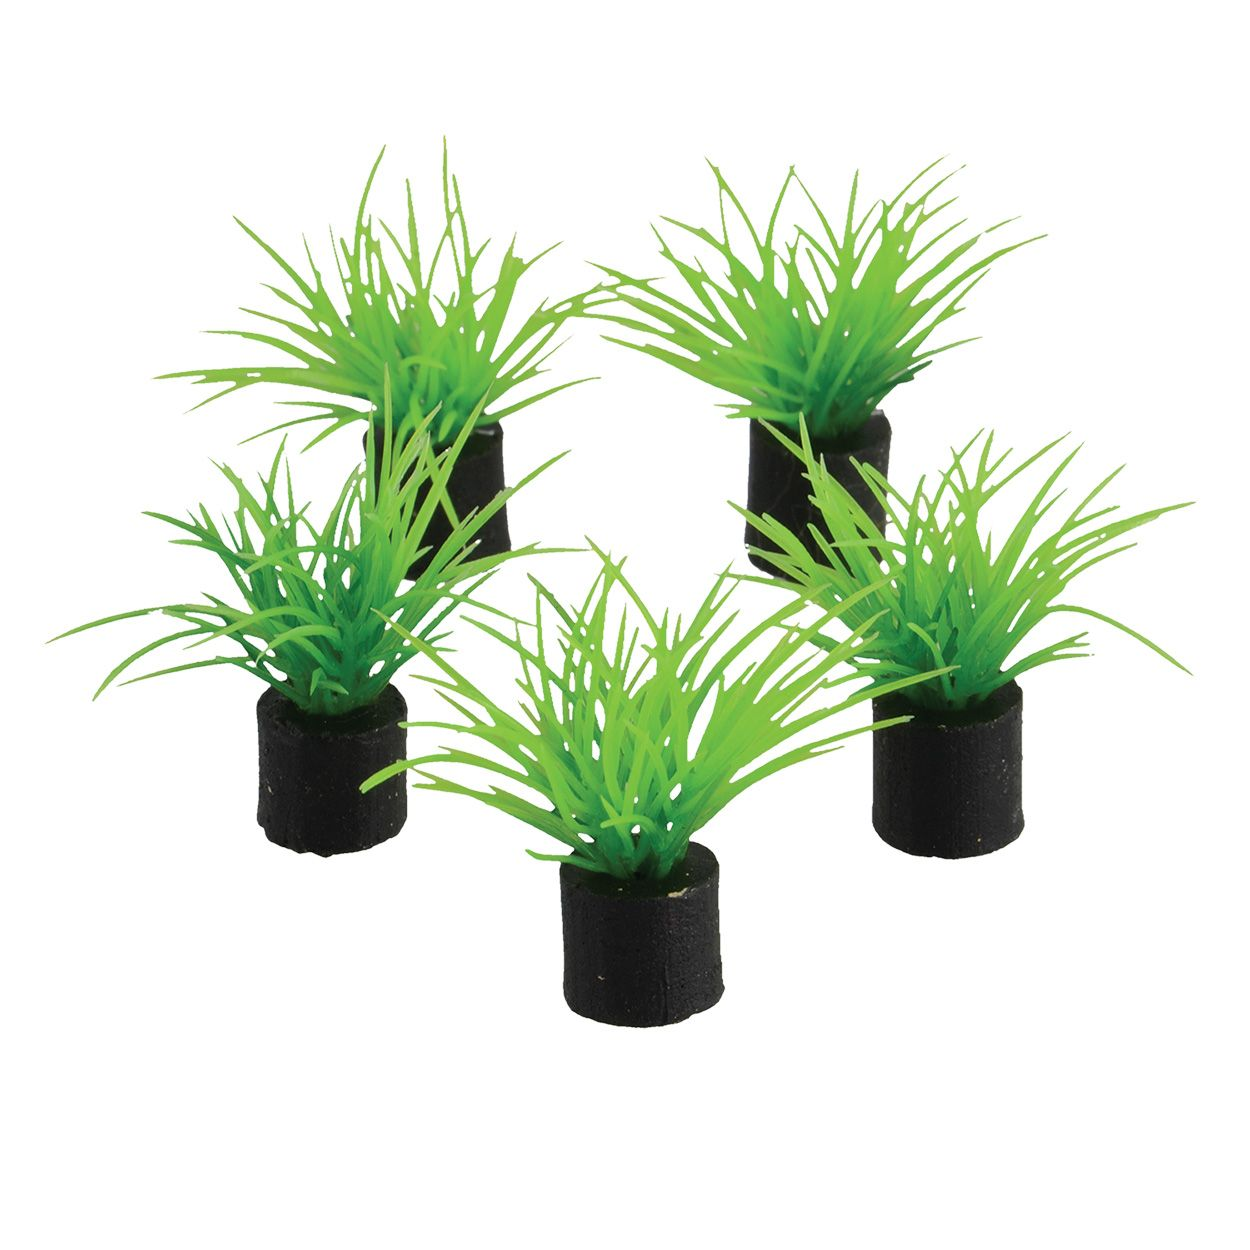 Underwater Treasures Green Grass Mini Plant - 1.5 inch (5 pk)